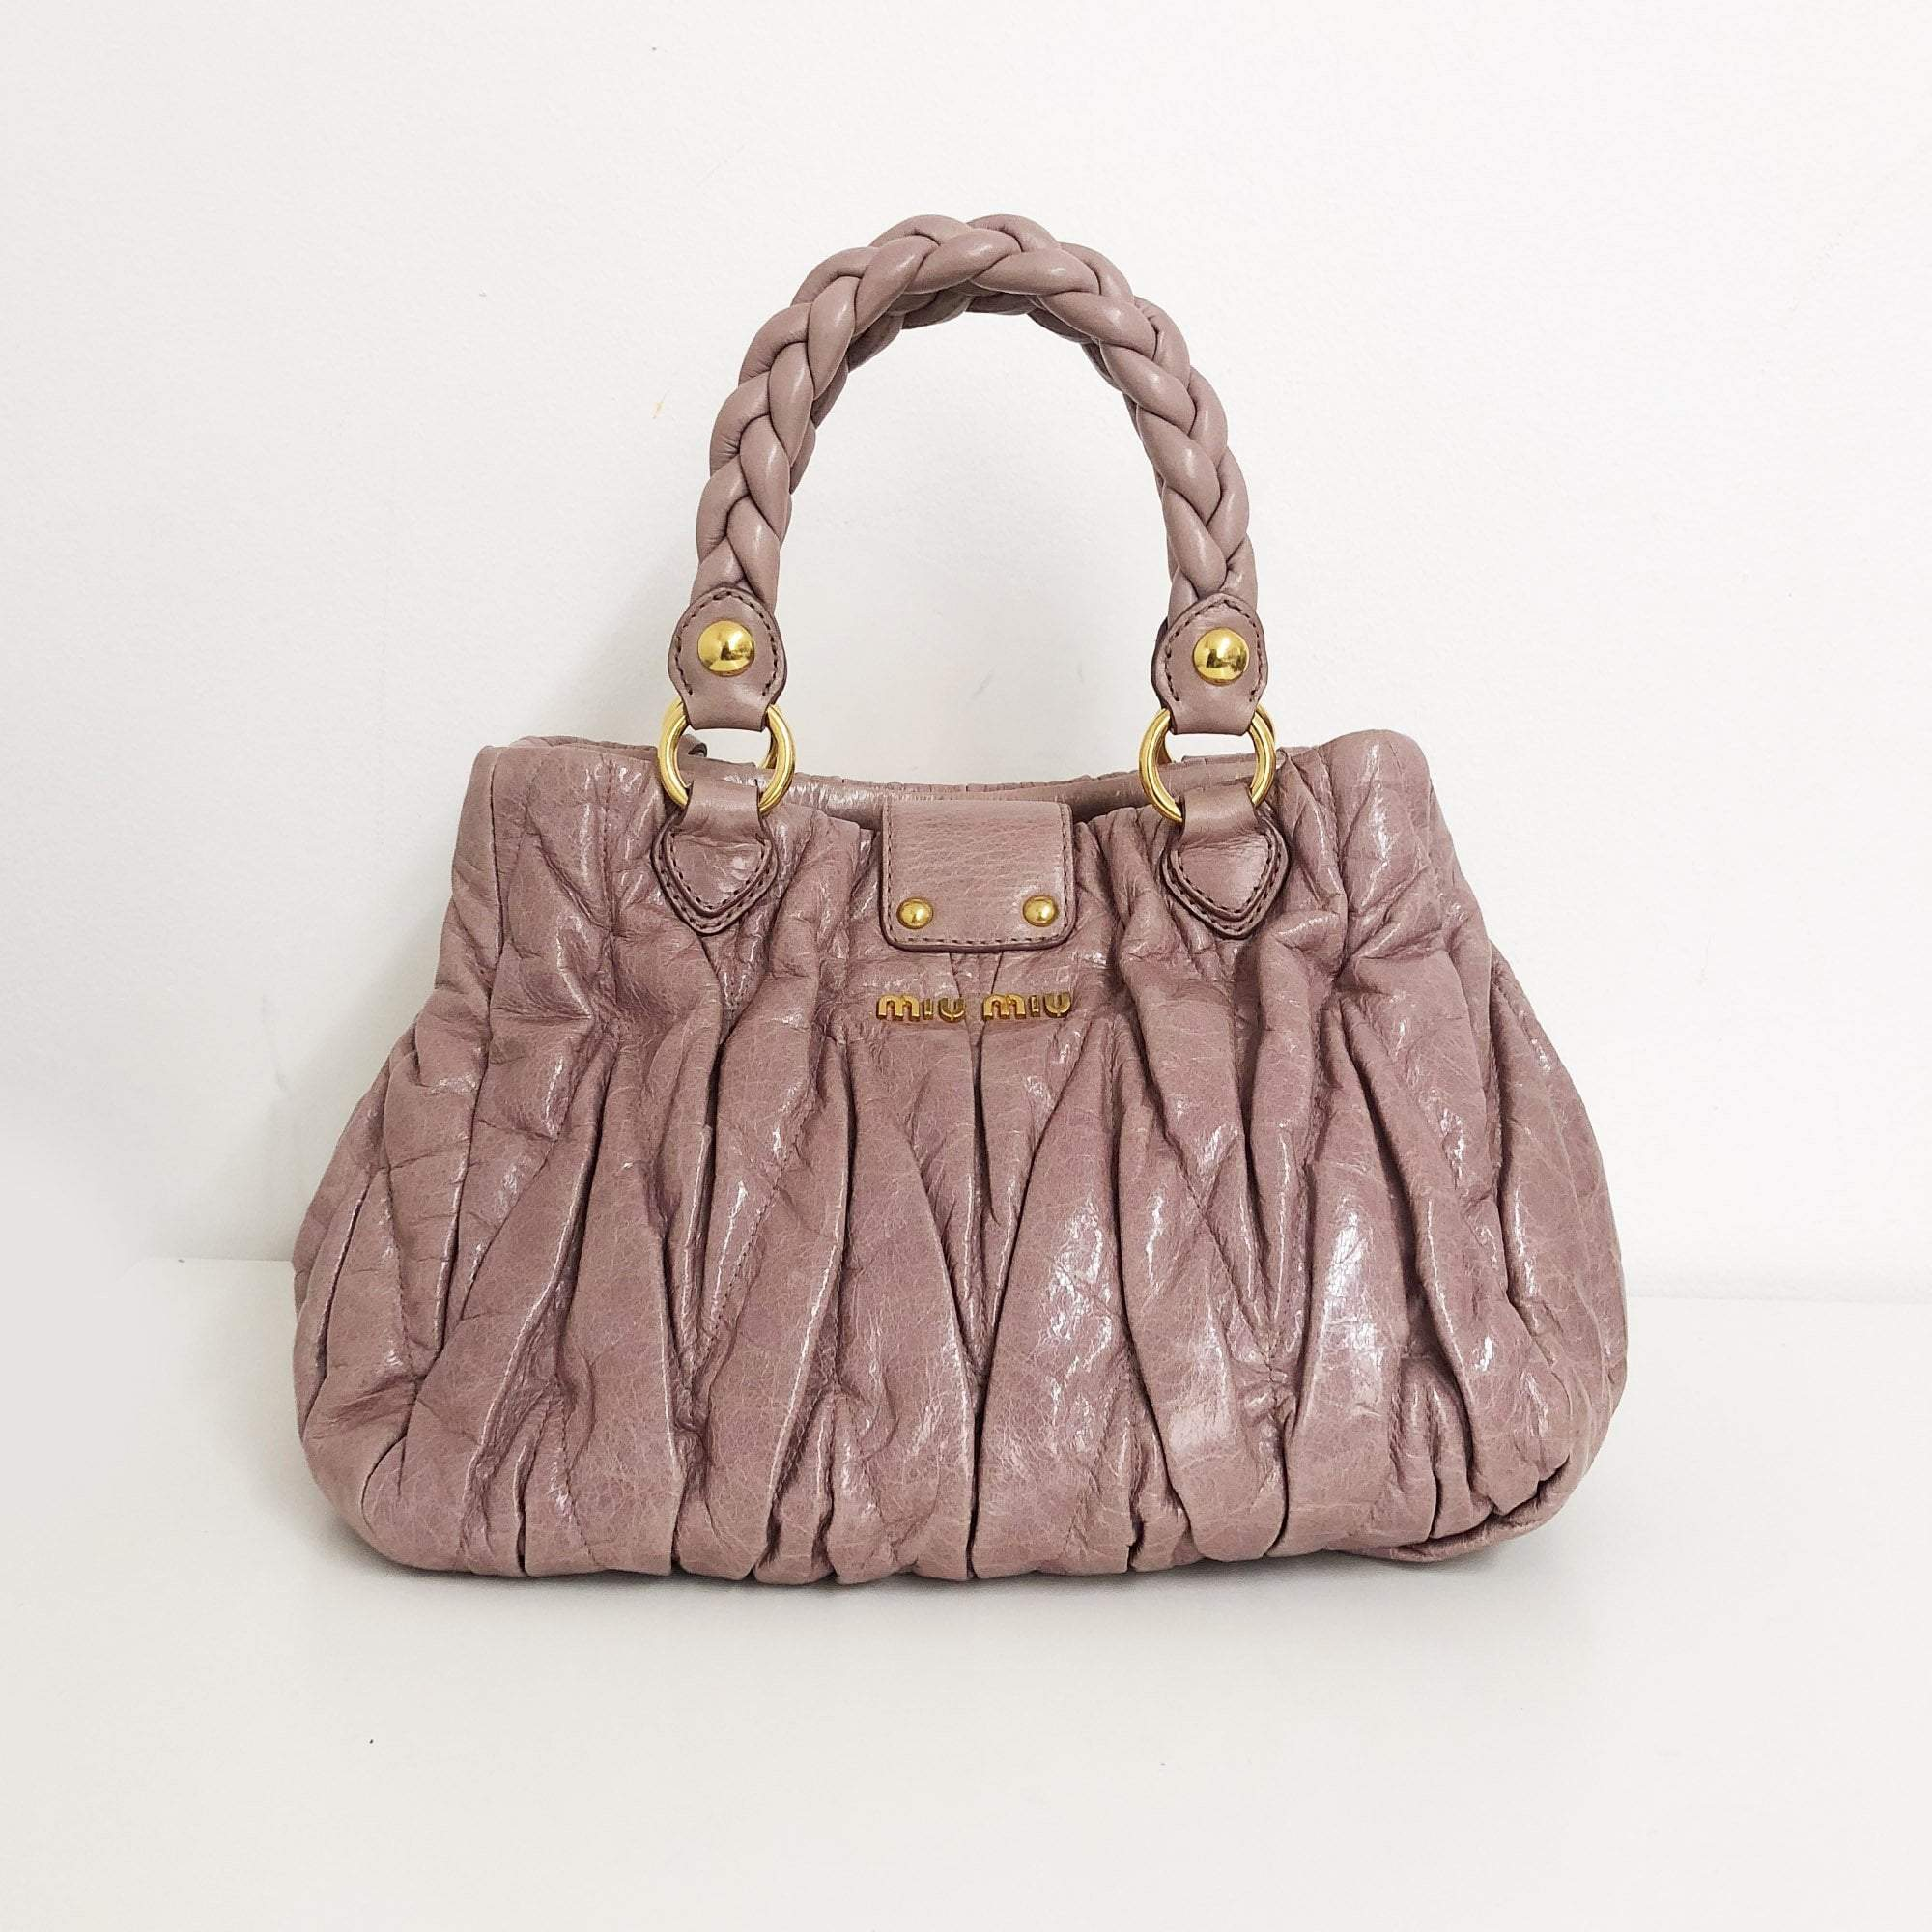 Miu Miu Dusty Pink Pleated Satchel Bag